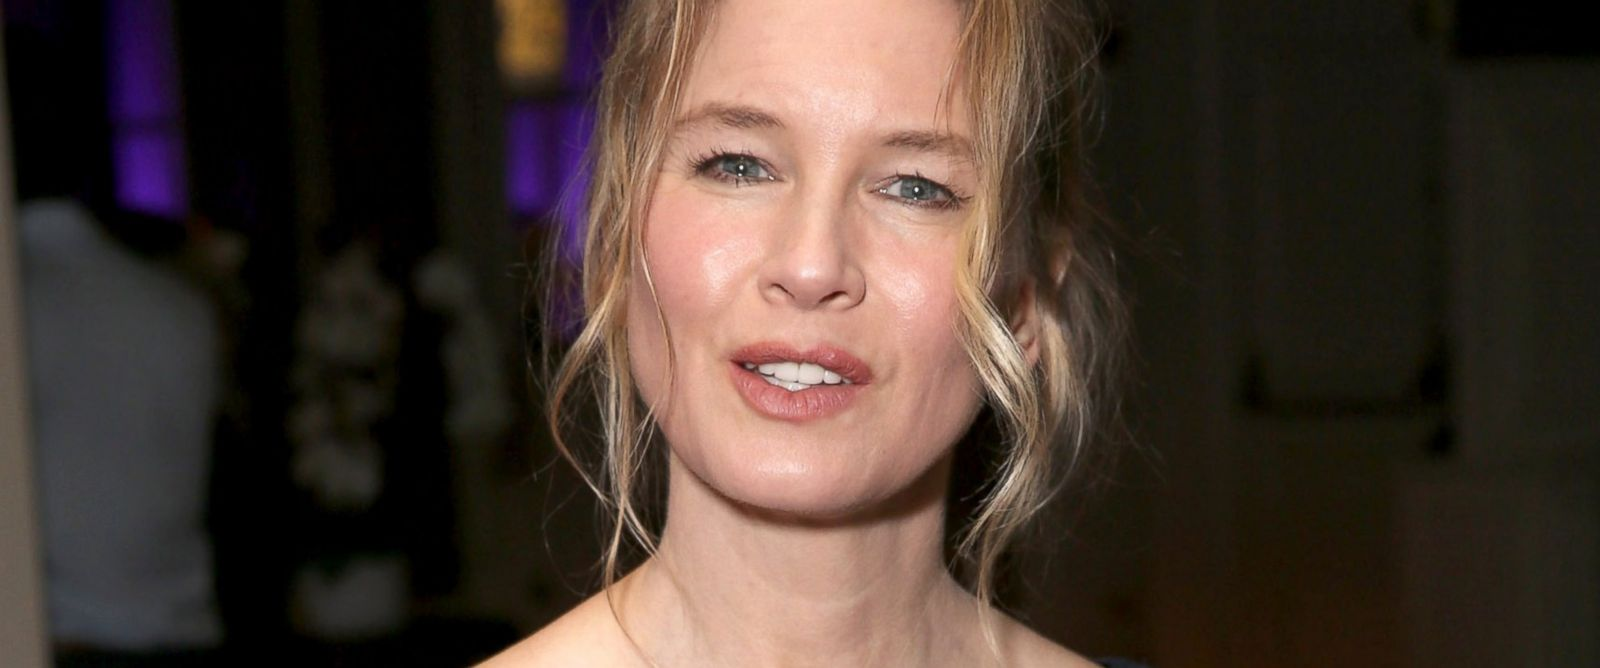 renee zellweger pens essay about troubling tabloid journalism renee zellweger pens essay about troubling tabloid journalism